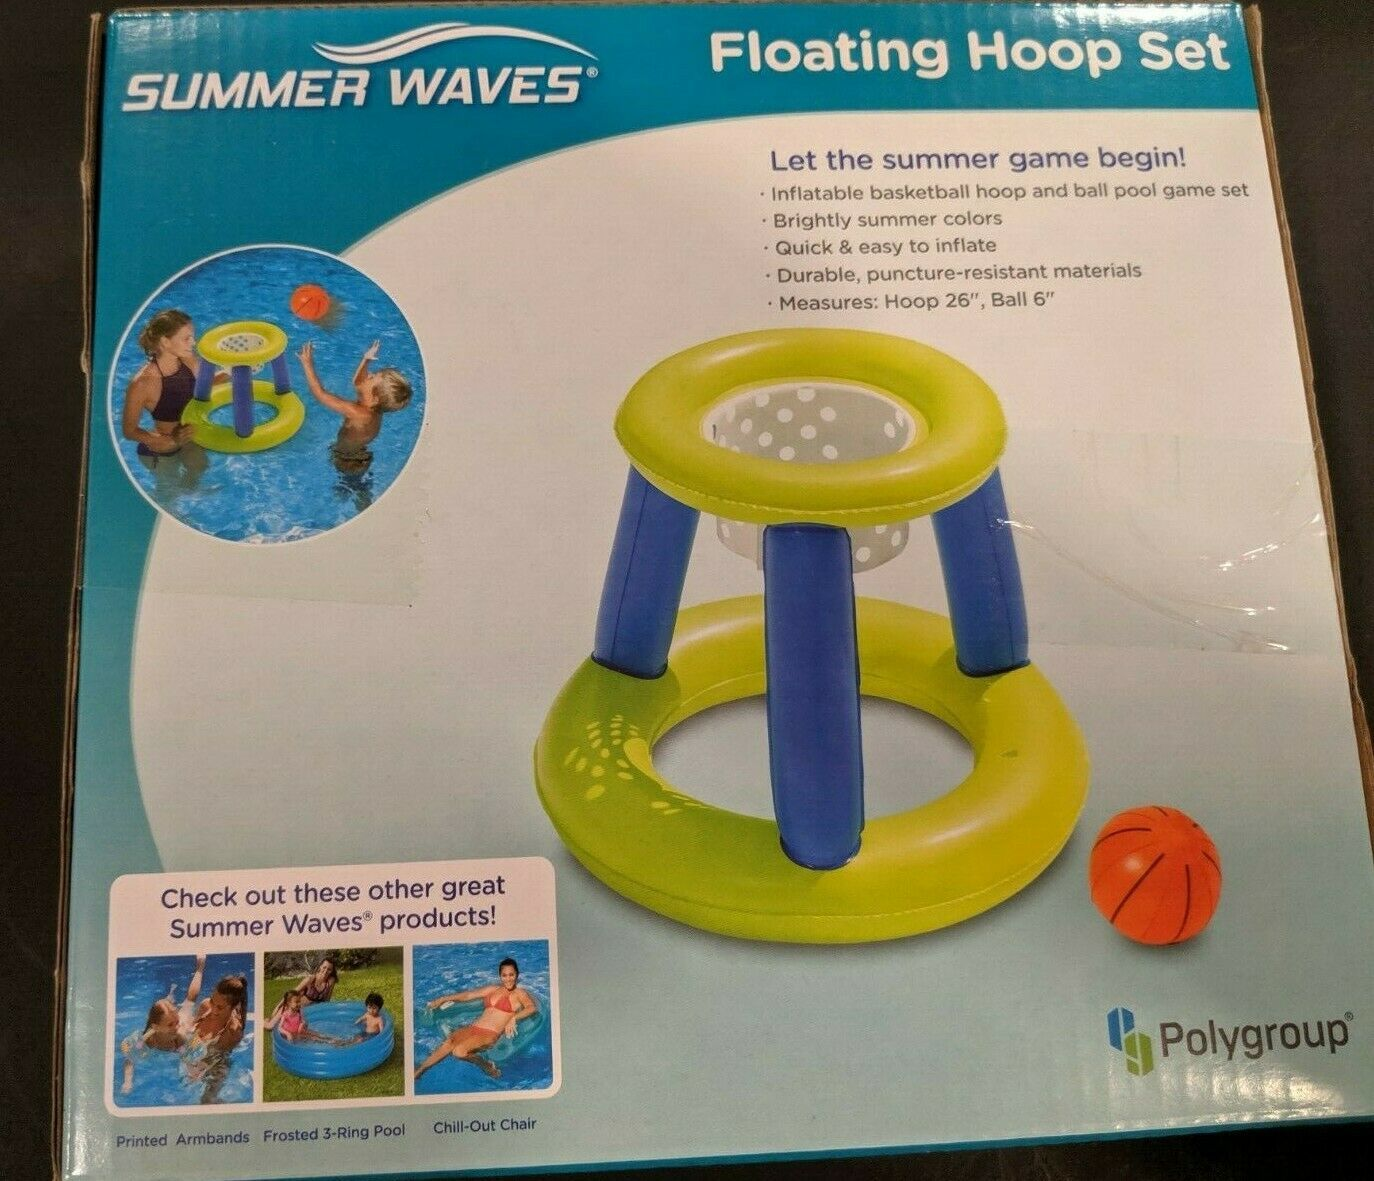 Summer Waves Floating Hoop Game Center Basketball Hoop And Ball Ages 6 and Up